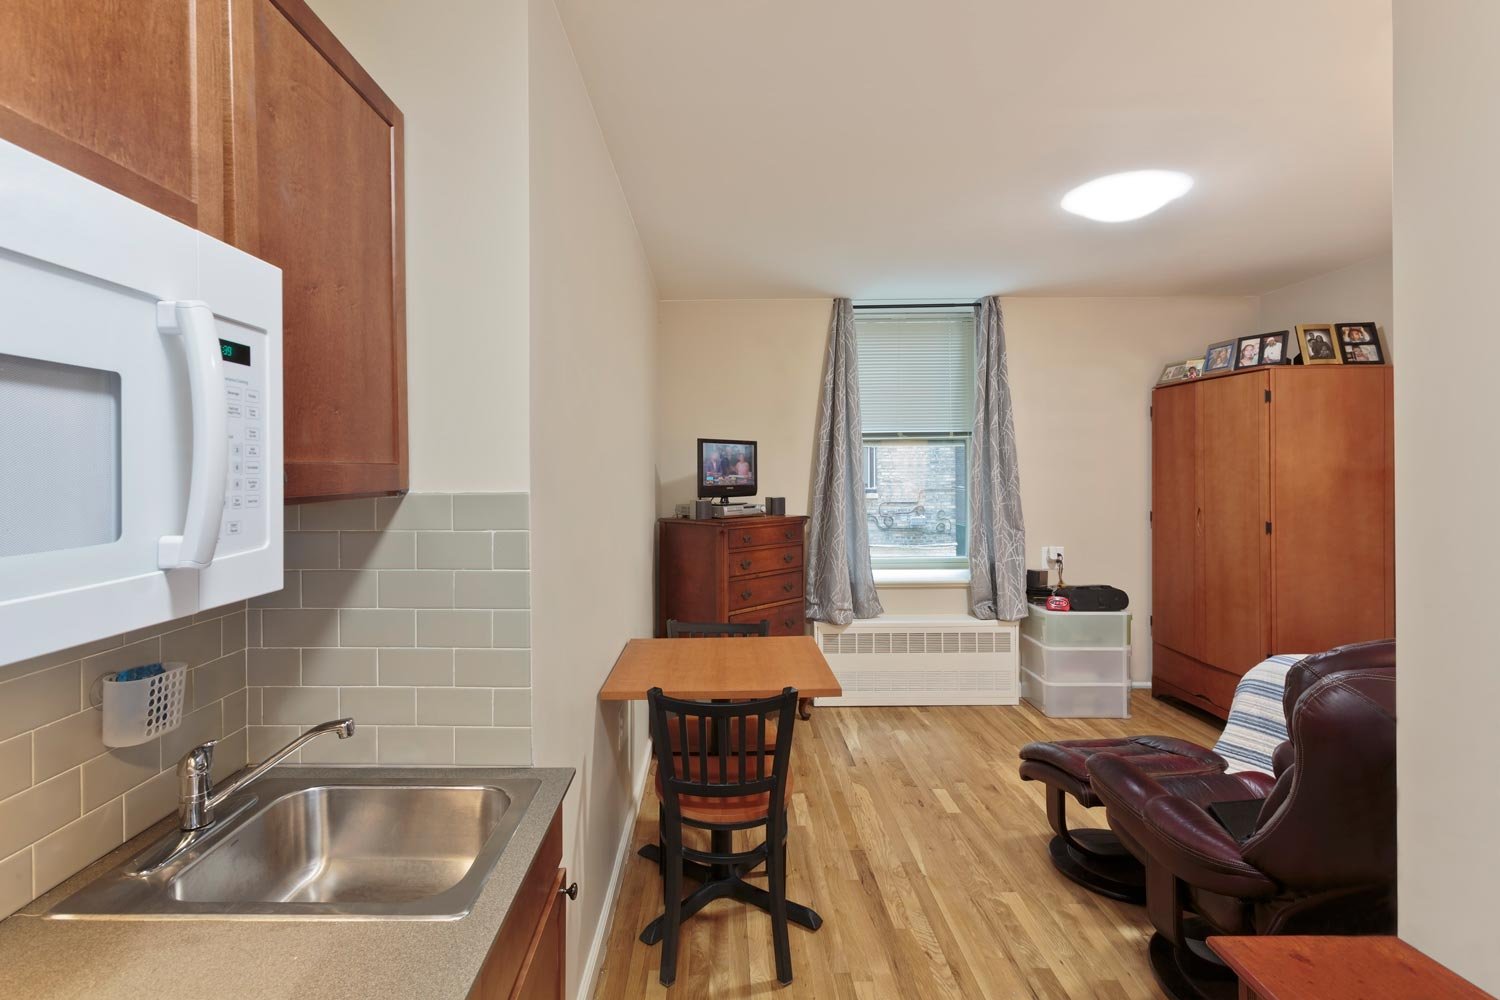 Existing arrangements of shared bathrooms and kitchens was reconfigured to units with private kitchenettes and bathrooms.